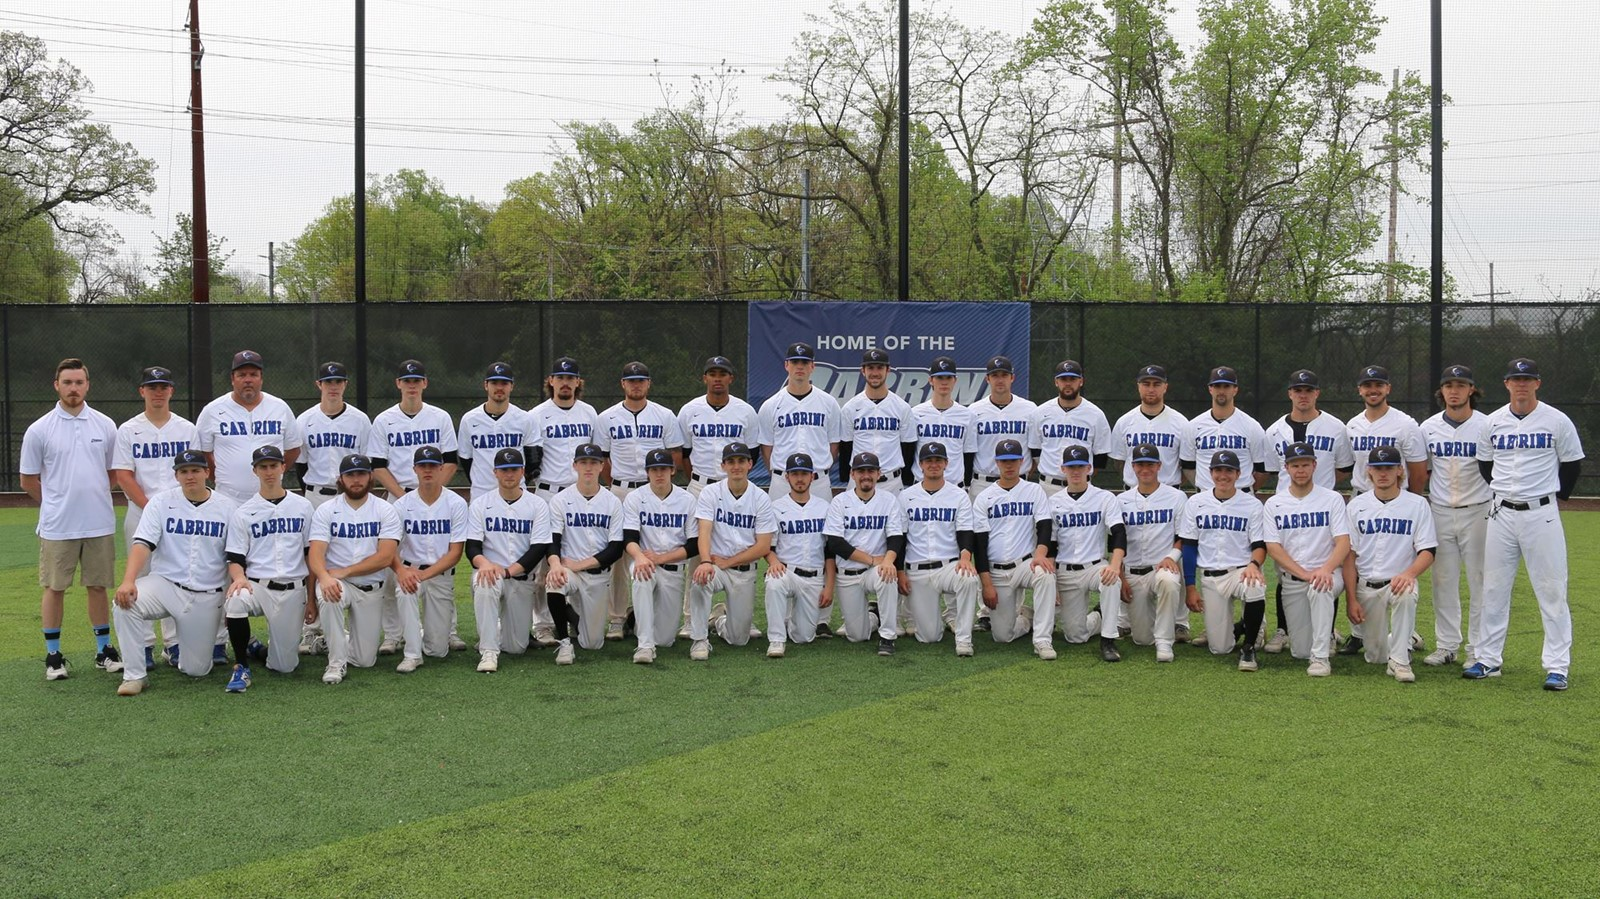 2018 baseball roster cabrini college athletics